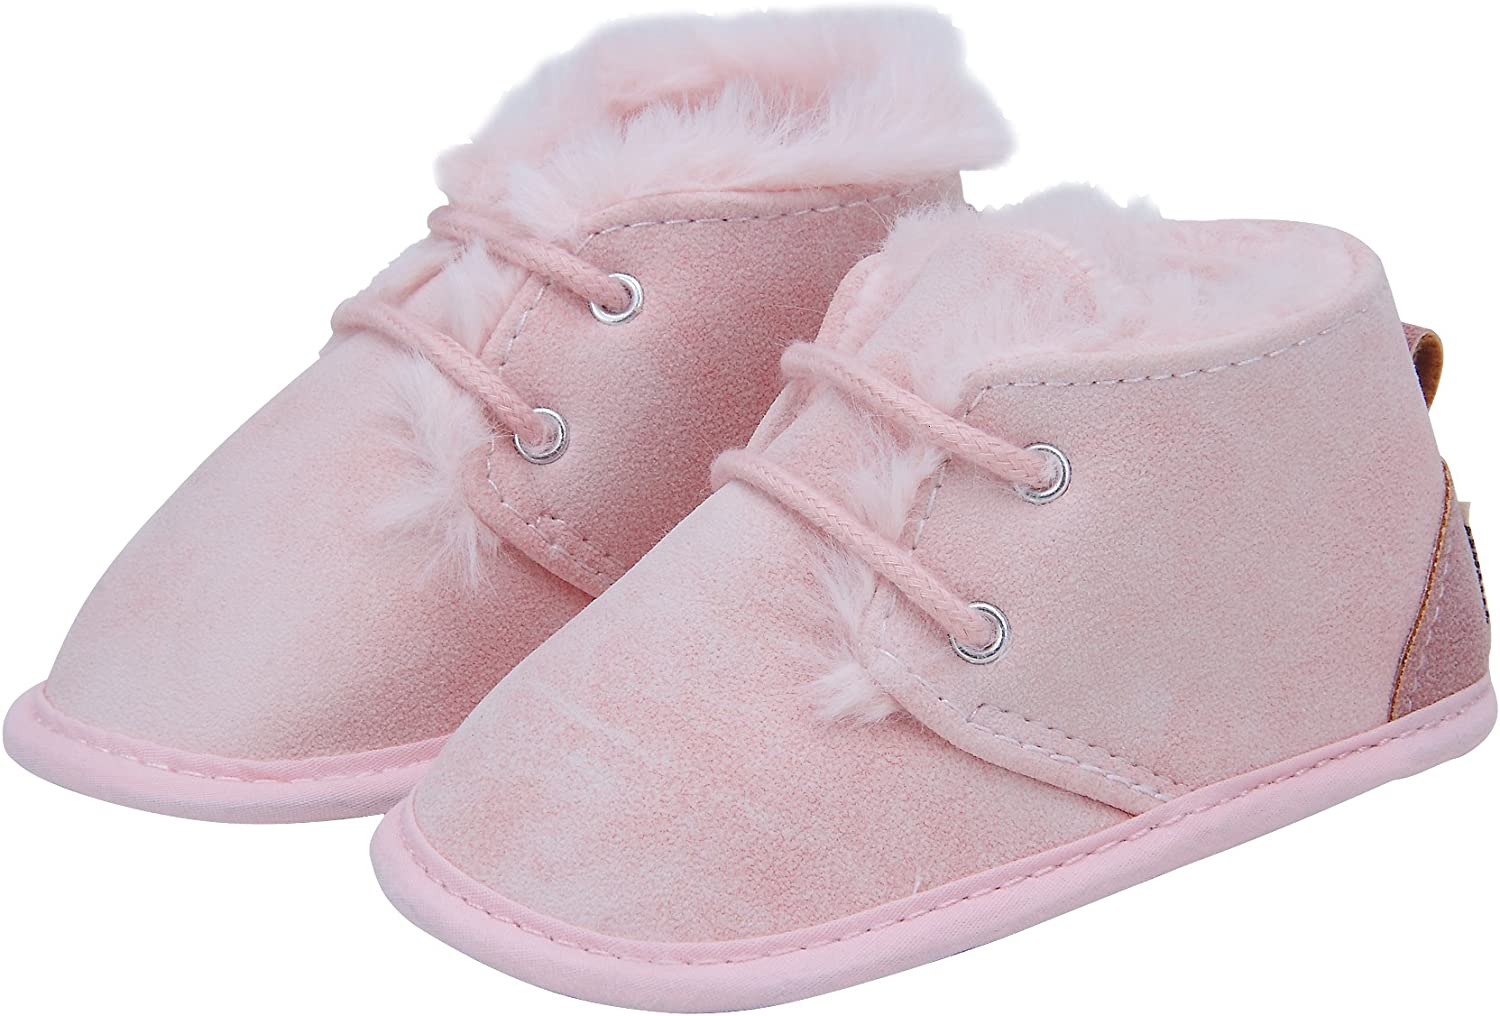 Kuner Baby Boys Girls Plush Shoe Laces Soft Bottom Warm Boots First Walkers Shoes